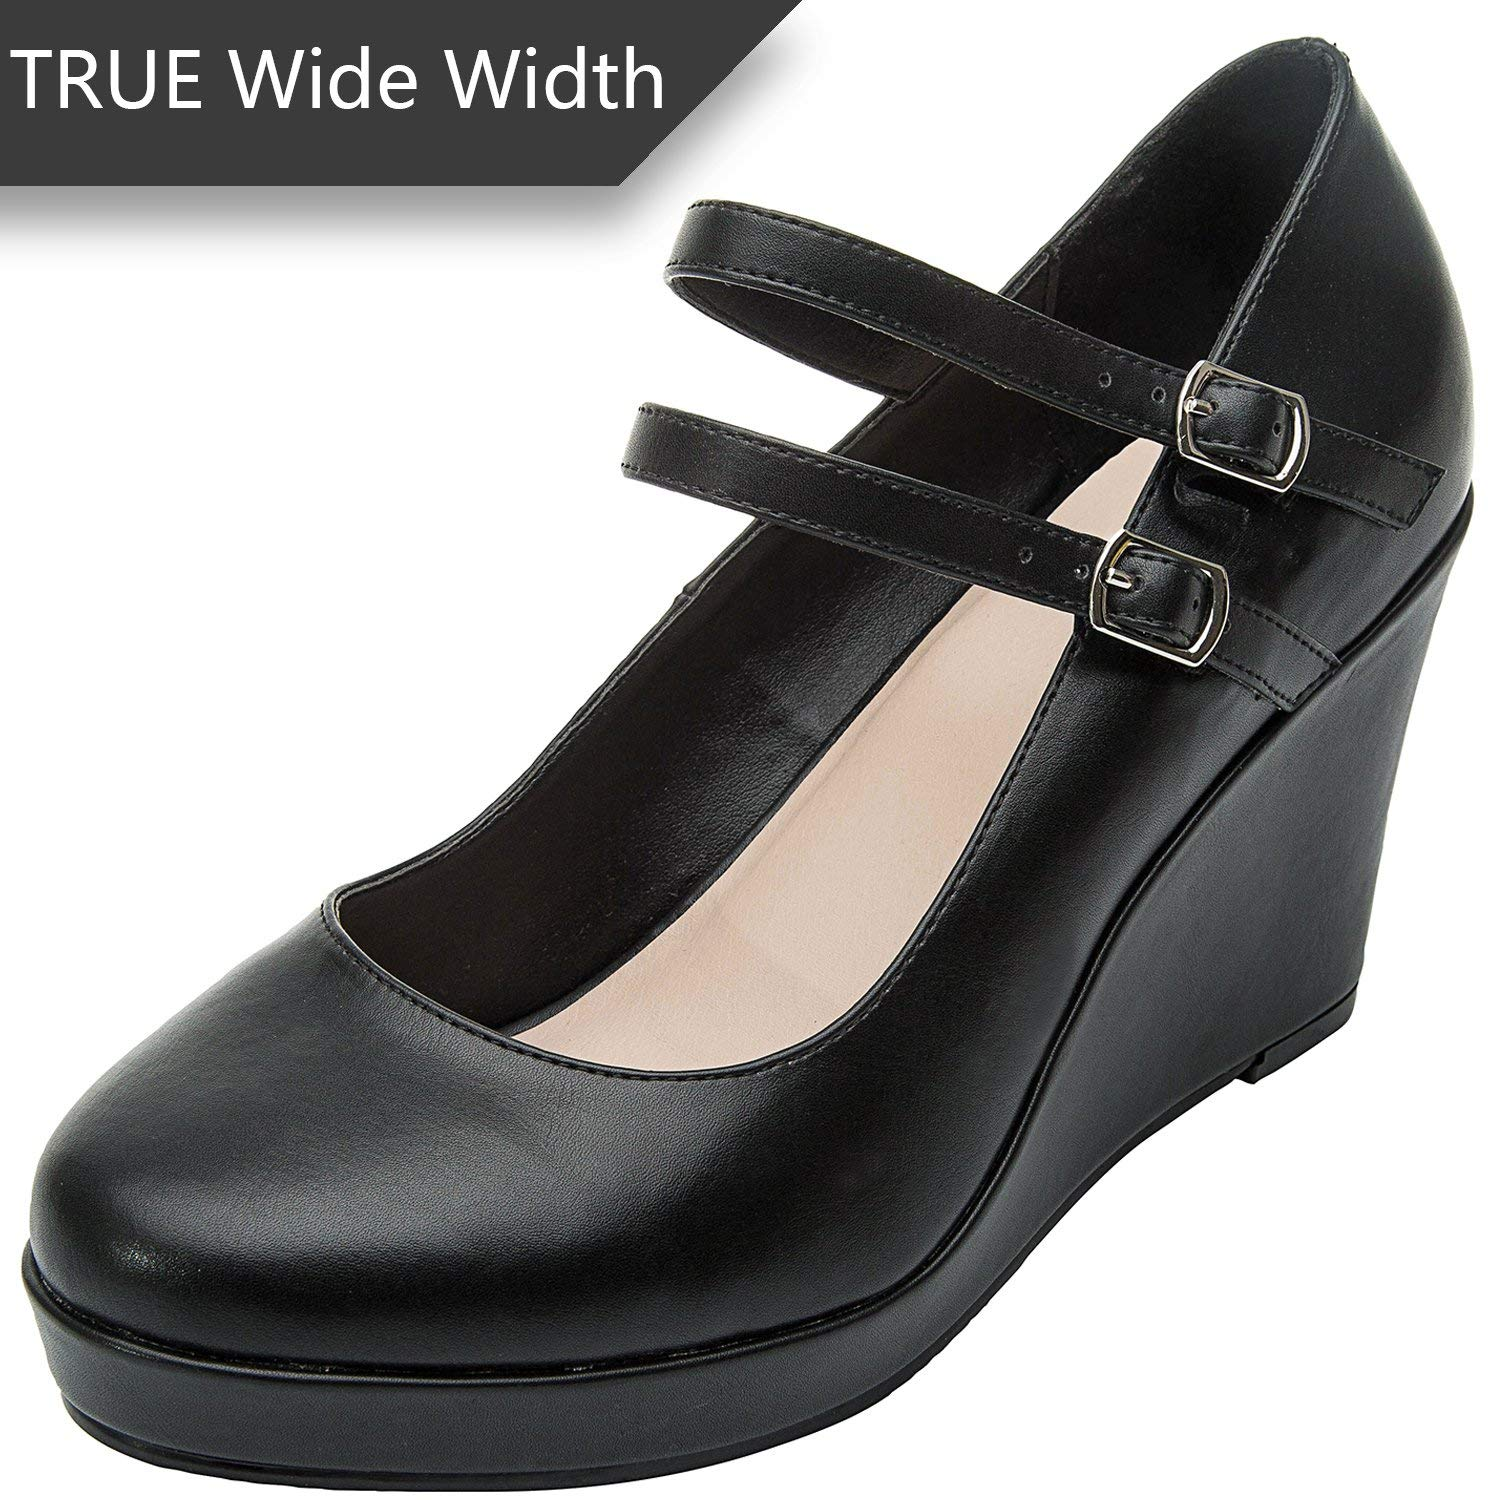 bf7a8a6d4f0 Get Quotations · Luoika Women s Wide Width Wedge Shoes - Mary Jane Ankle  Buckle Double Strap Round Closed Toe